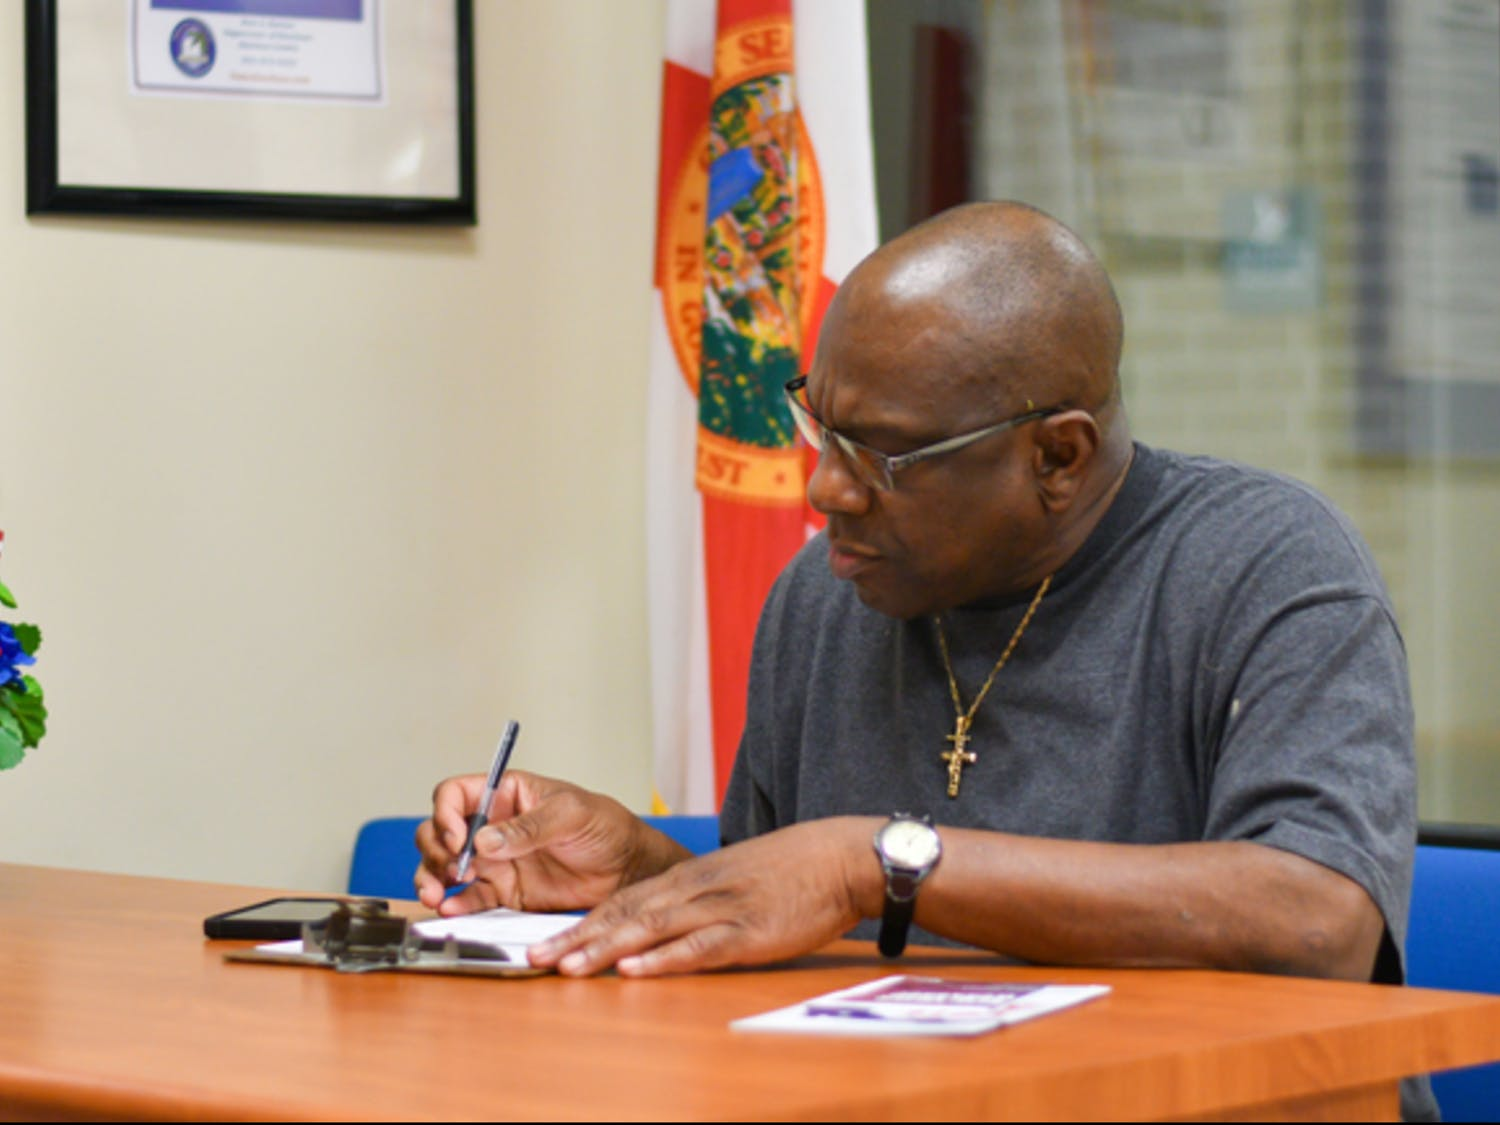 Harry Jones, a 61-year-old formerly incarcerated Alachua County resident, registers to vote Tuesday, Jan. 8, 2019, at the Alachua County Supervisor of Elections office. Jones, who has been out of prison for 13 years, had his right to vote restored after Amendment 4 passed in the 2018 midterm election. Tuesday was the first day Amendment 4 was put into effect. About 50 people registered to vote in Alachua County, said TJ Pyche, the elections office spokesperson.